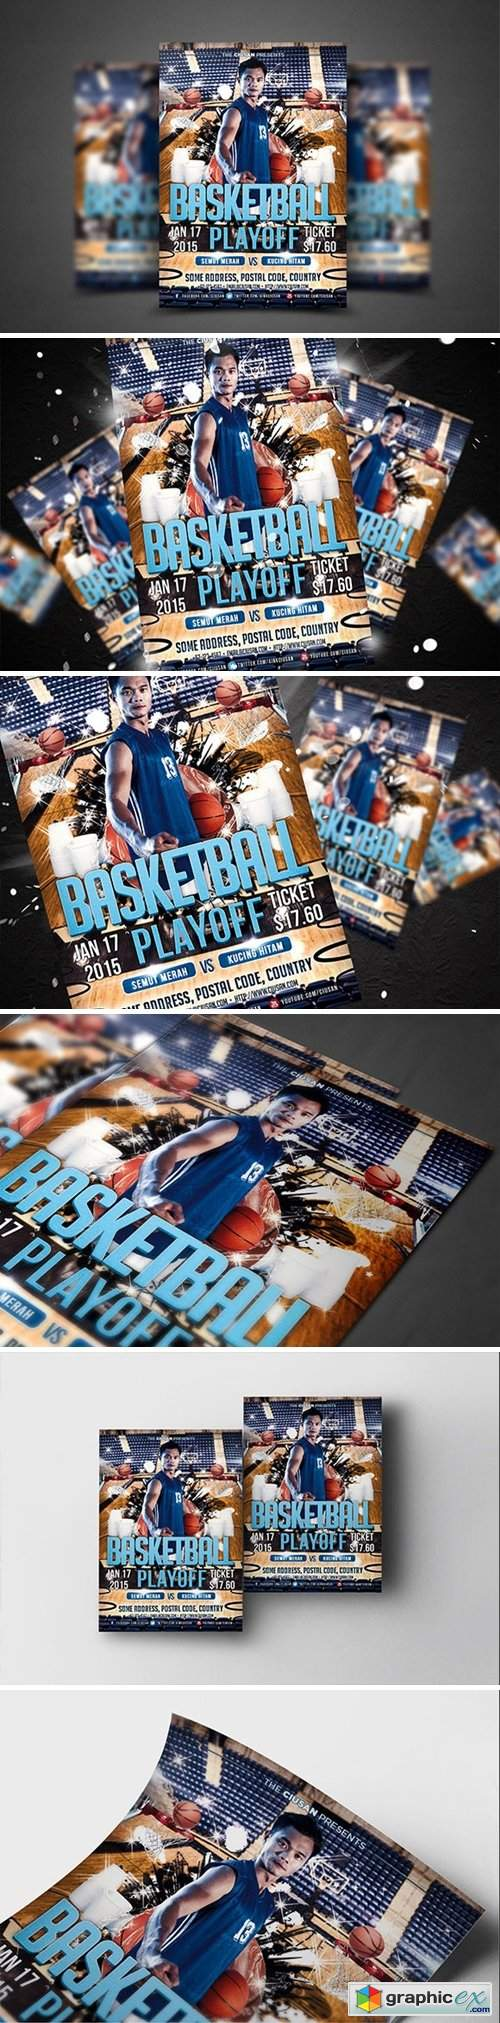 Basketball Playoff Flyer Template 3940932